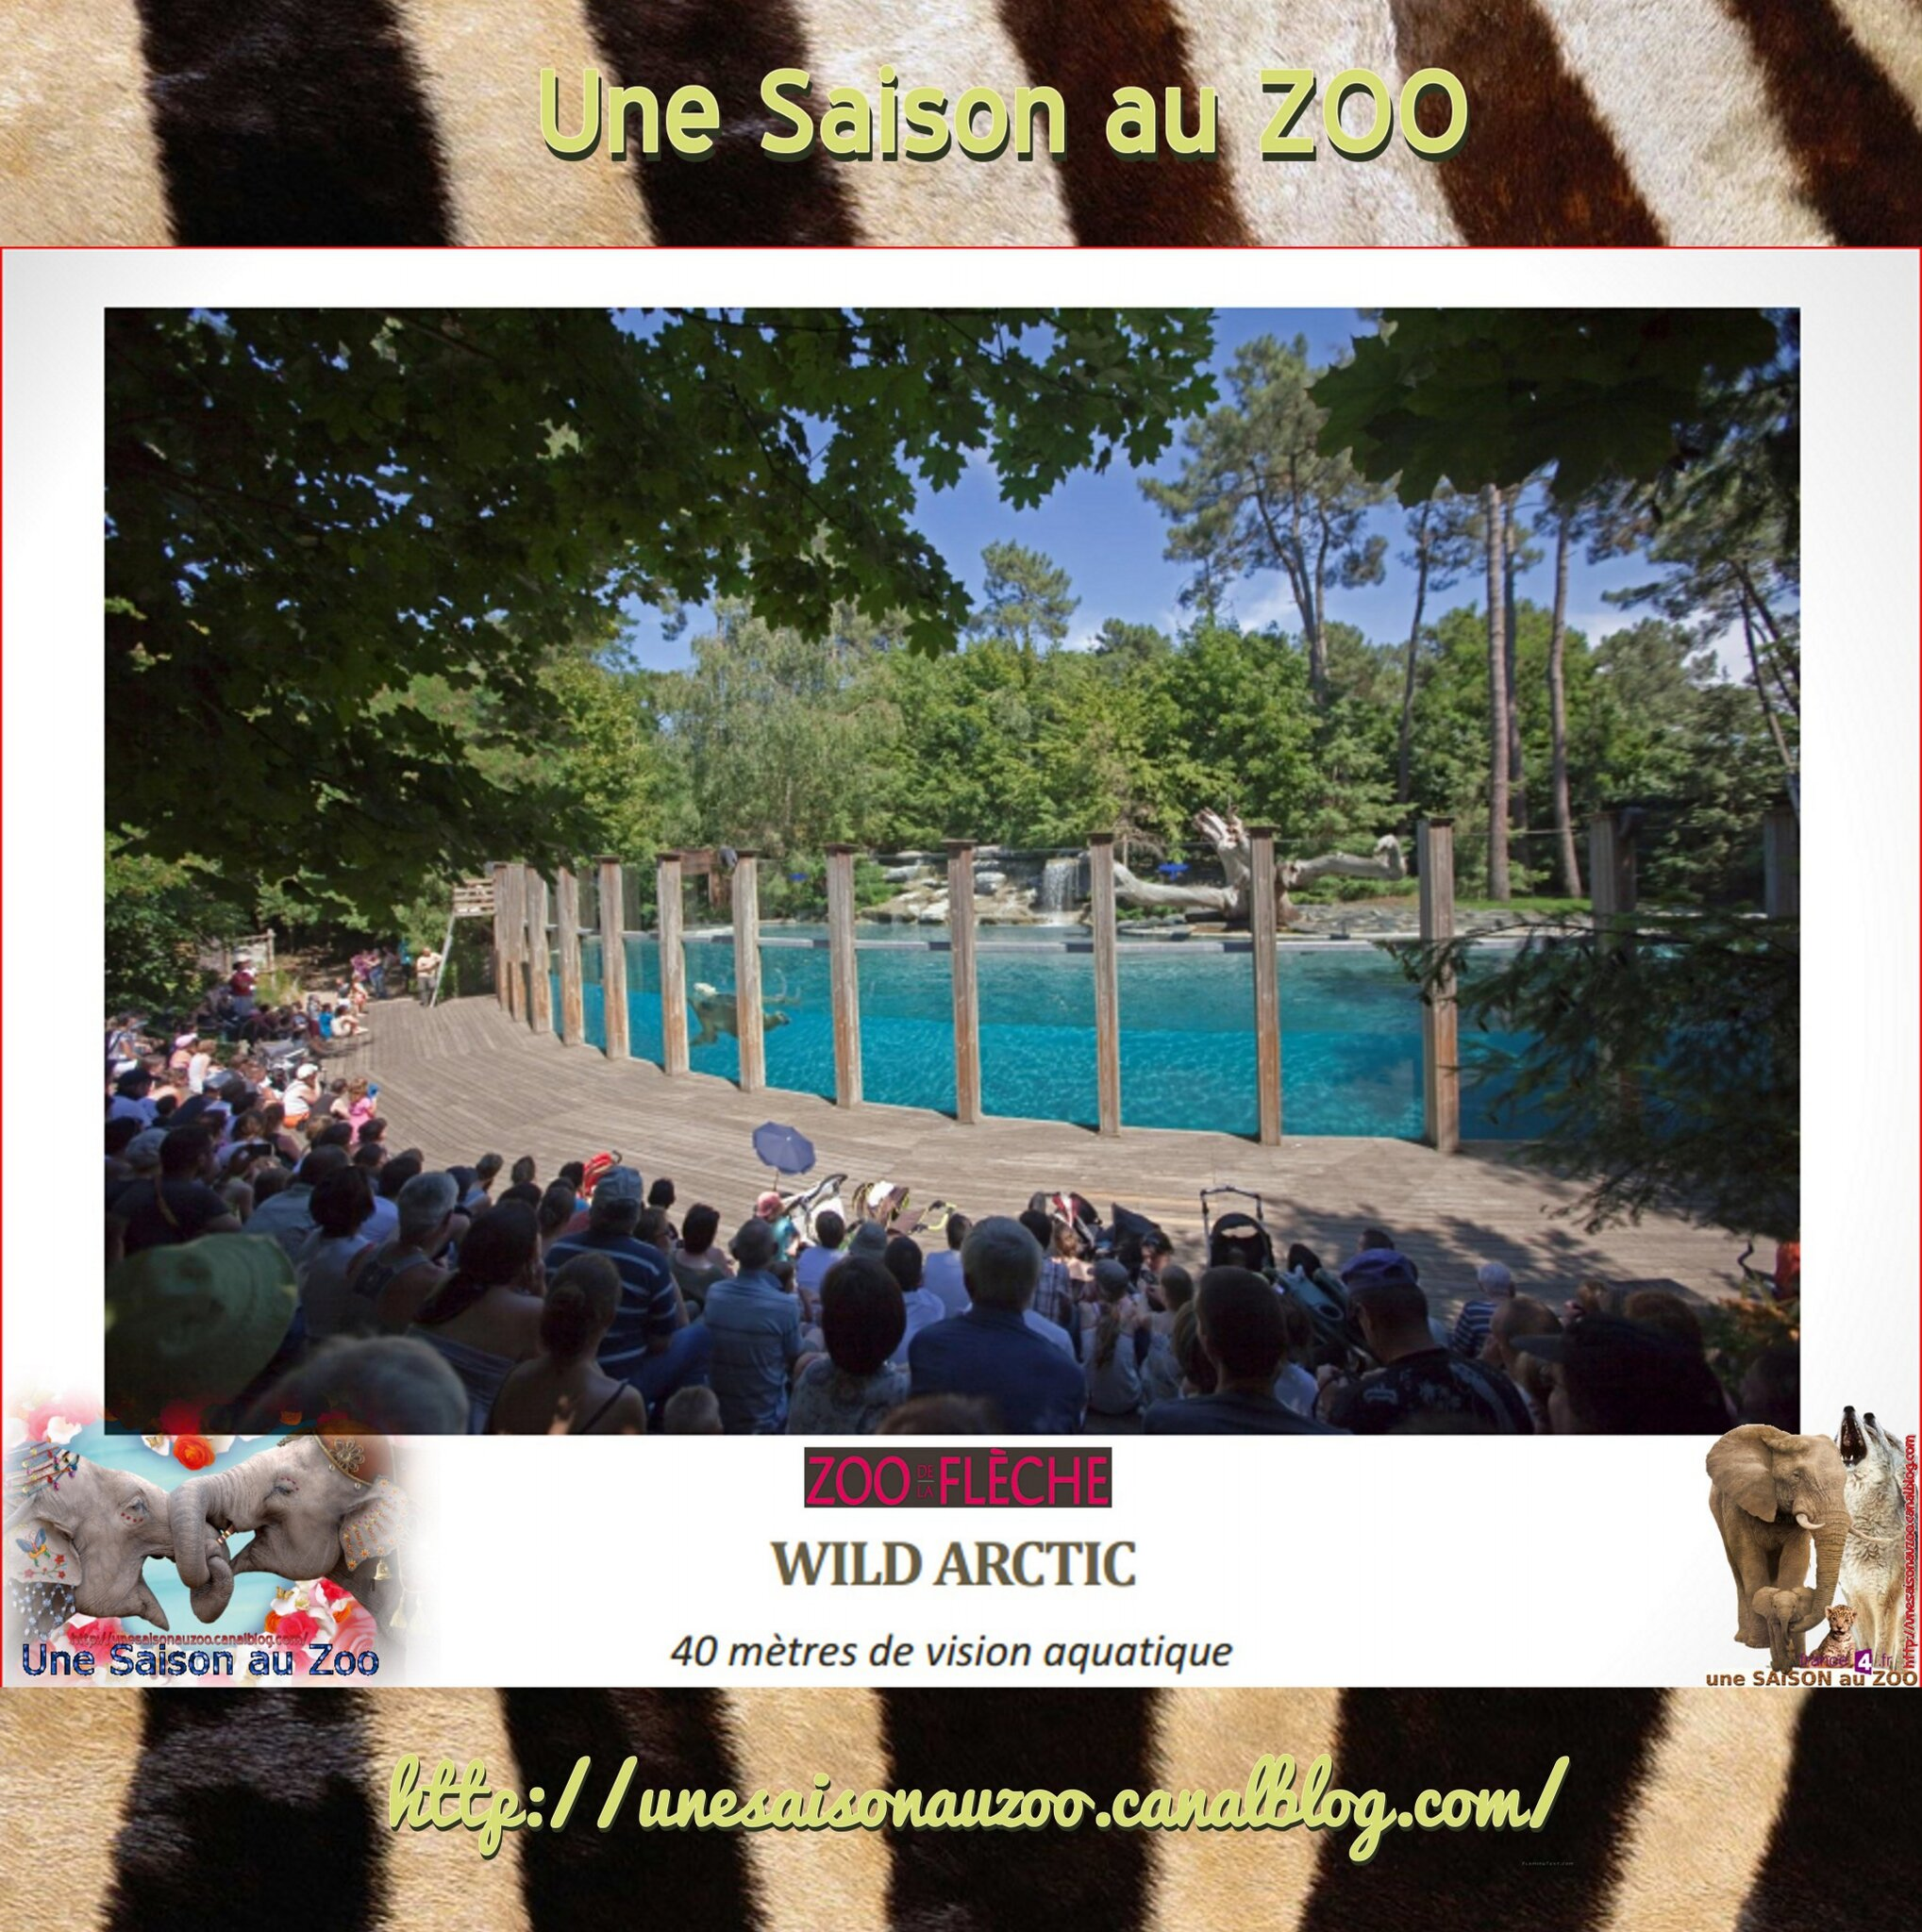 - LODGES SAiSON au ZOO